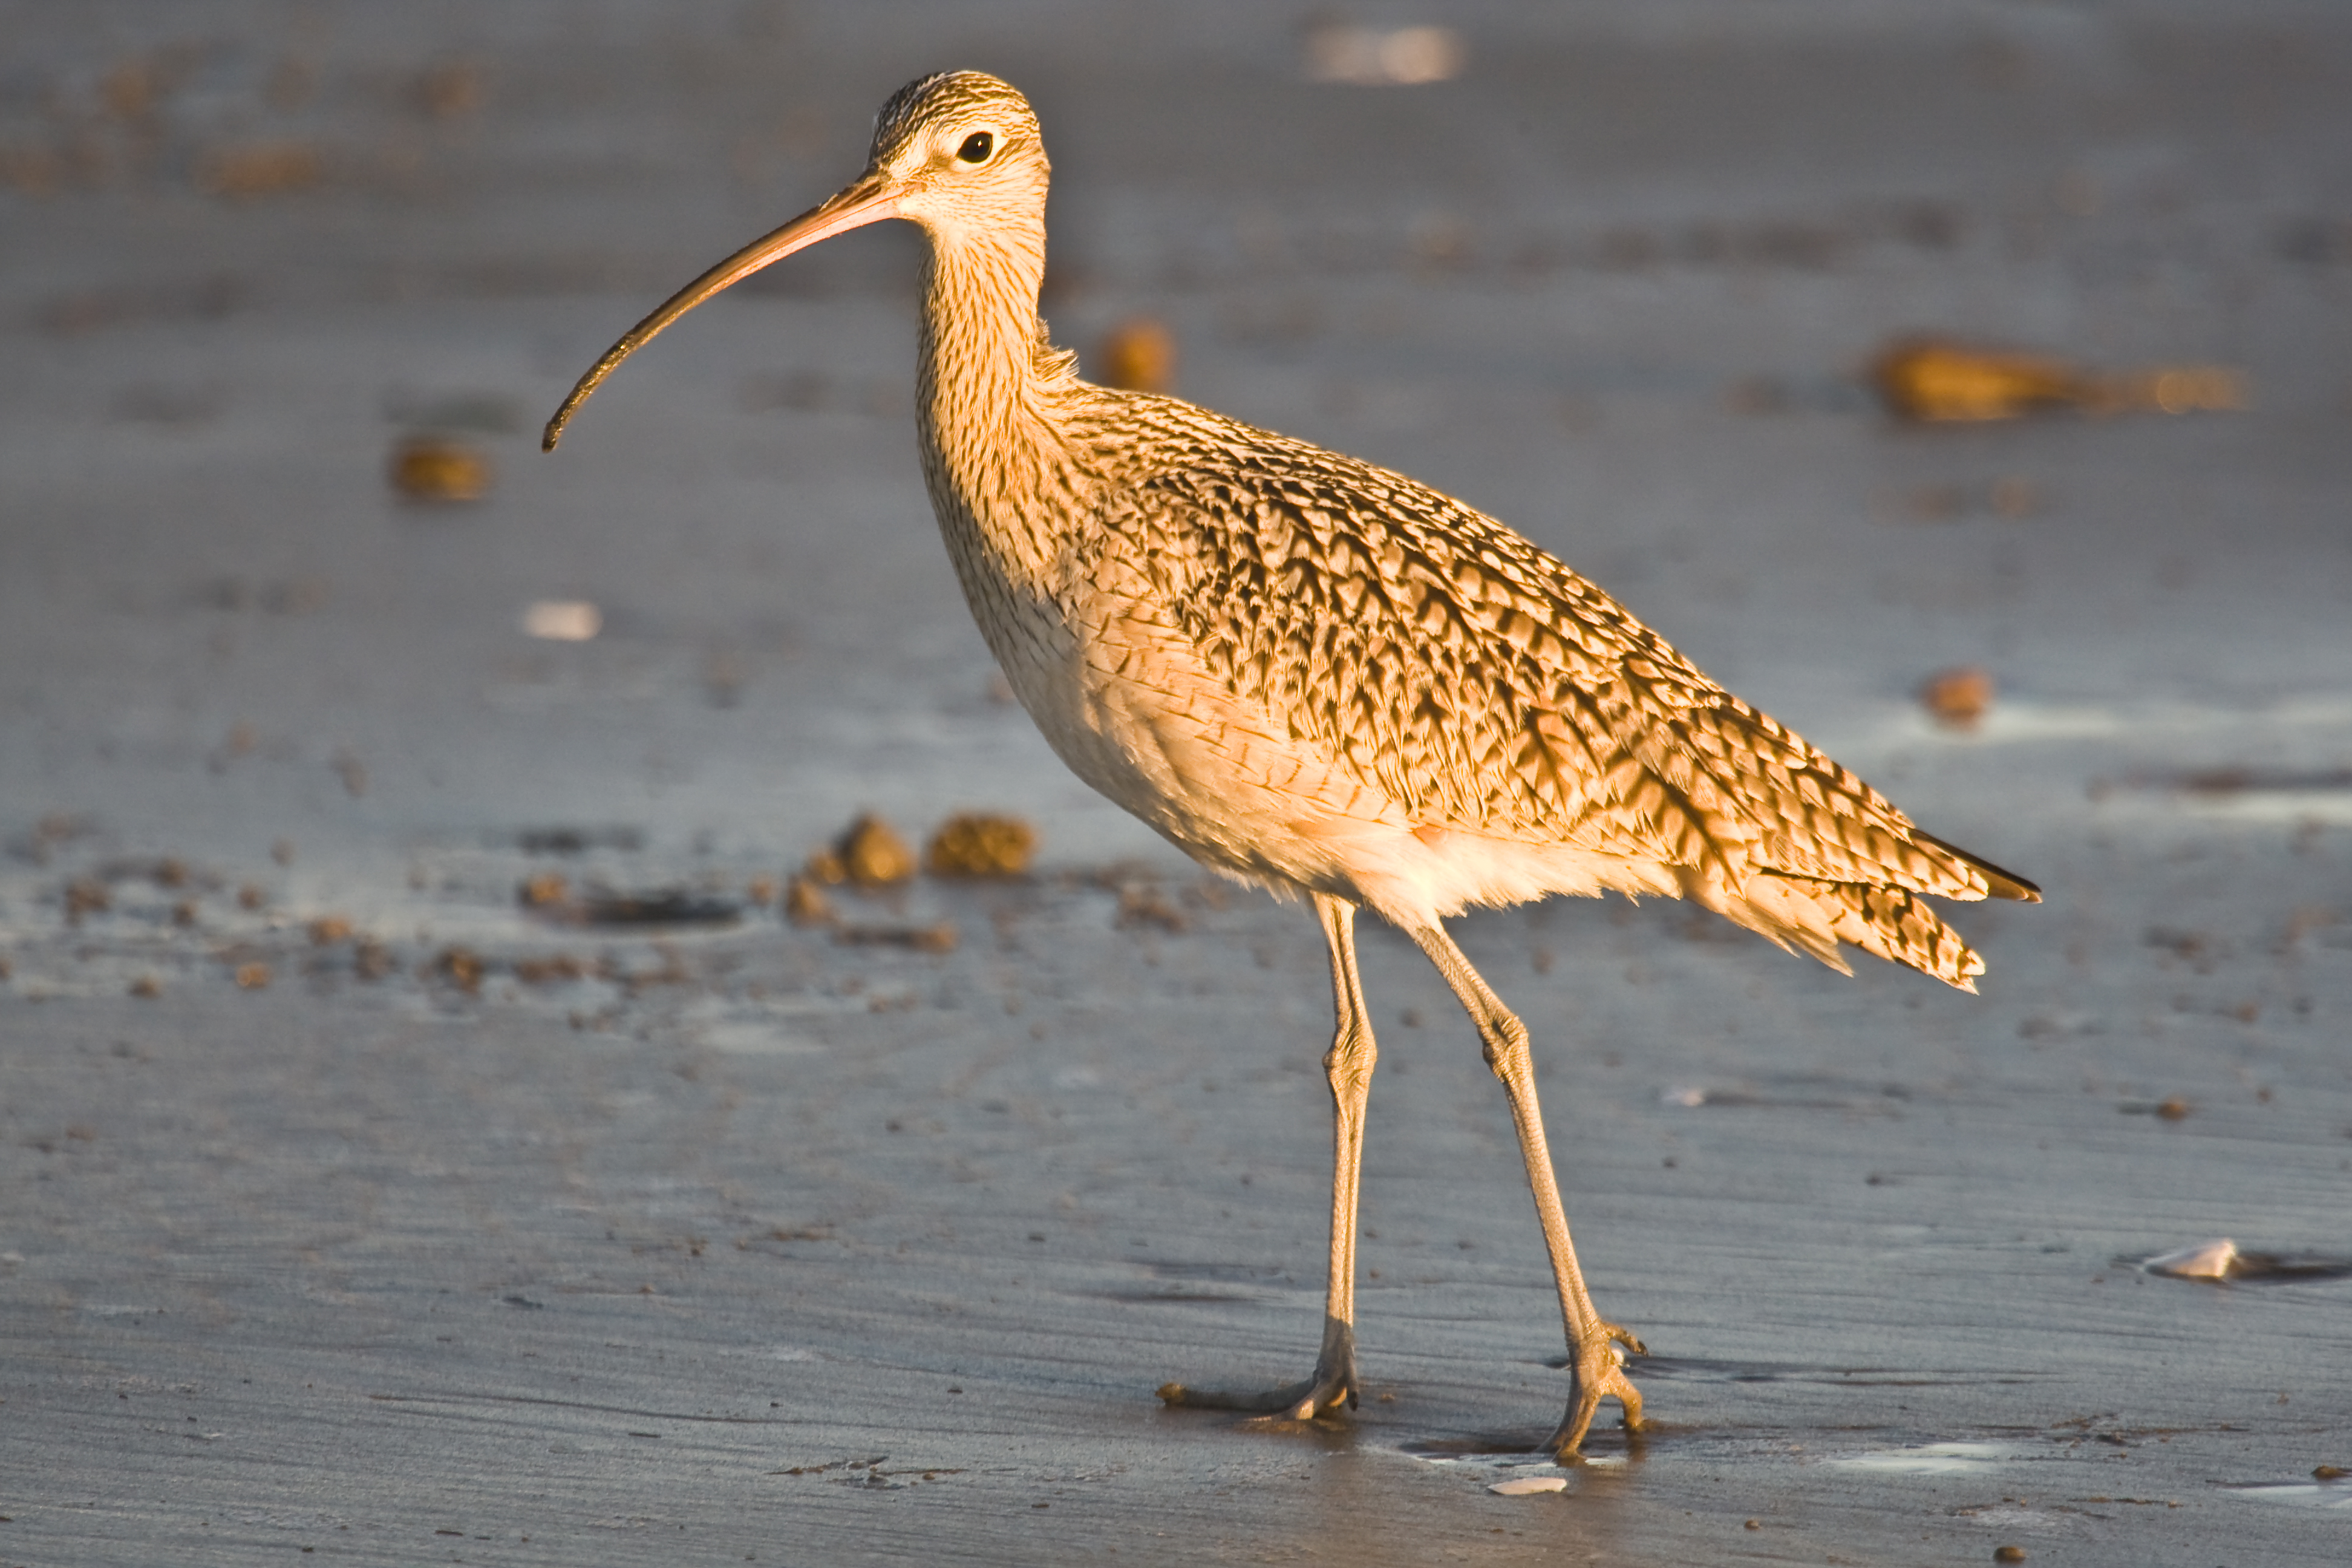 curlew online dating Online dating news man arrested on reported dating site solicitation commentary: a match made in silicon valley can has #metoo finally gone too far.